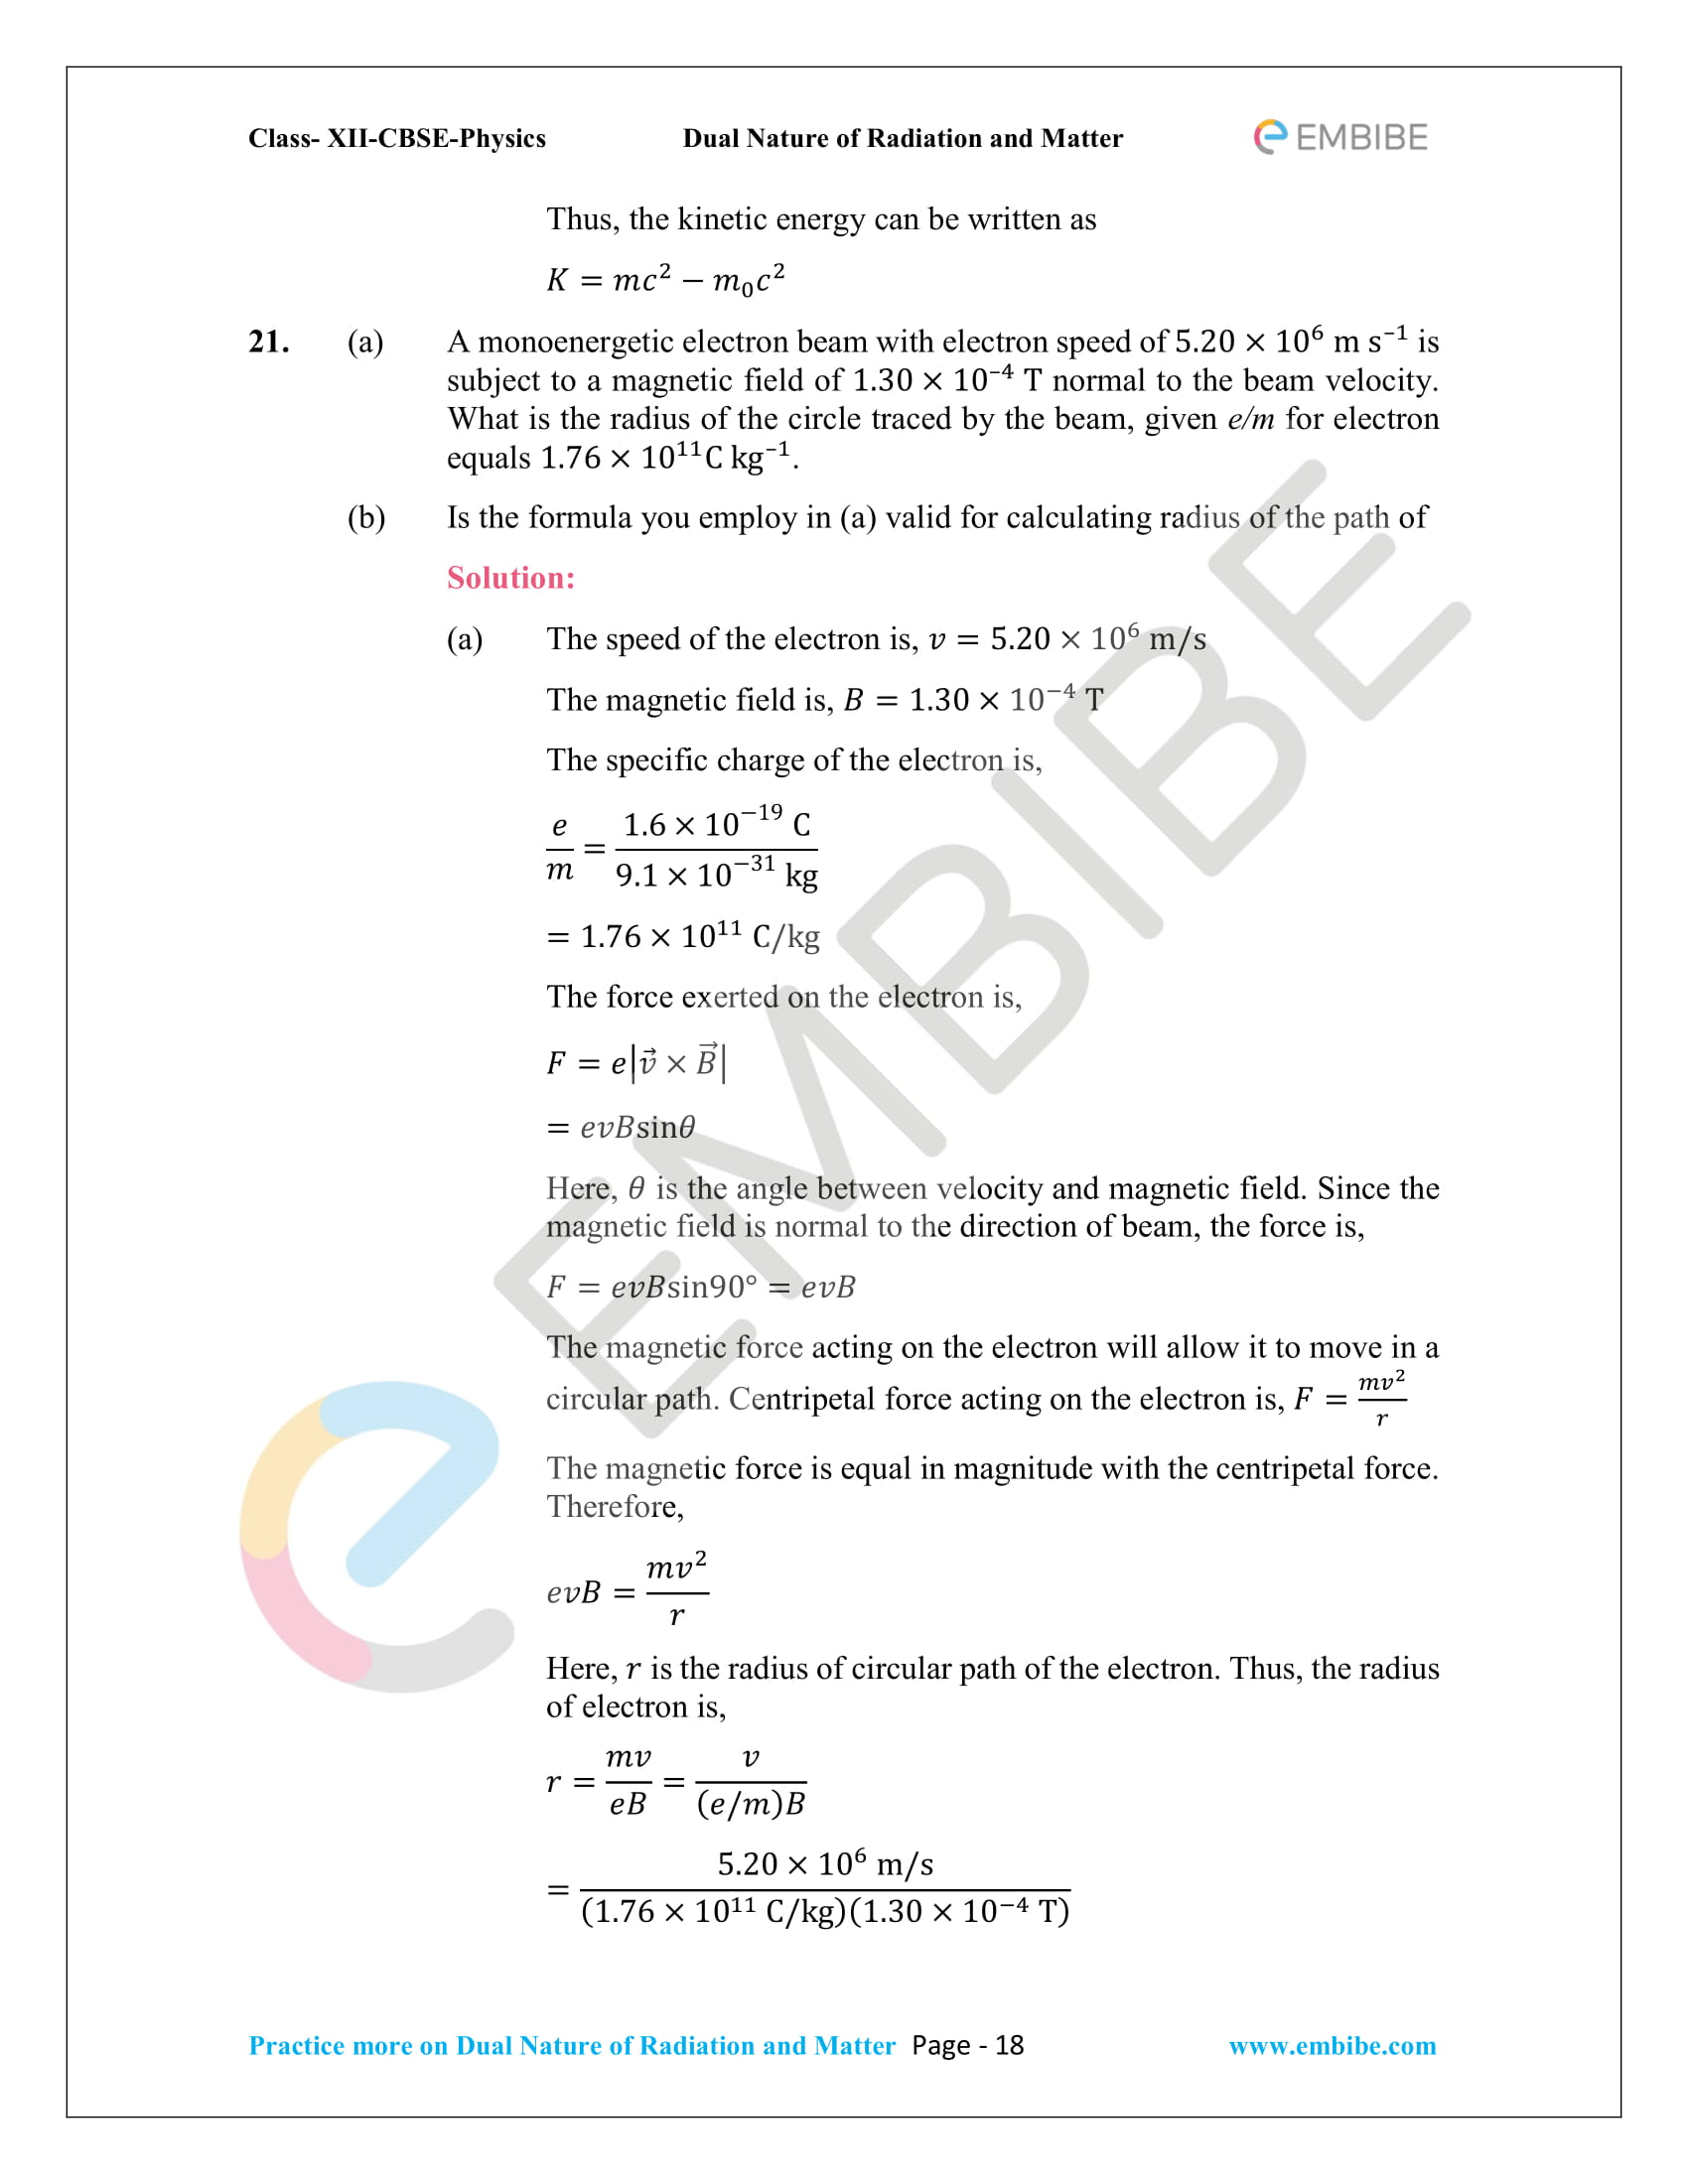 NCERT_Grade 12_Physics_Ch_11_Dual Nature of Radiation and Matter-18